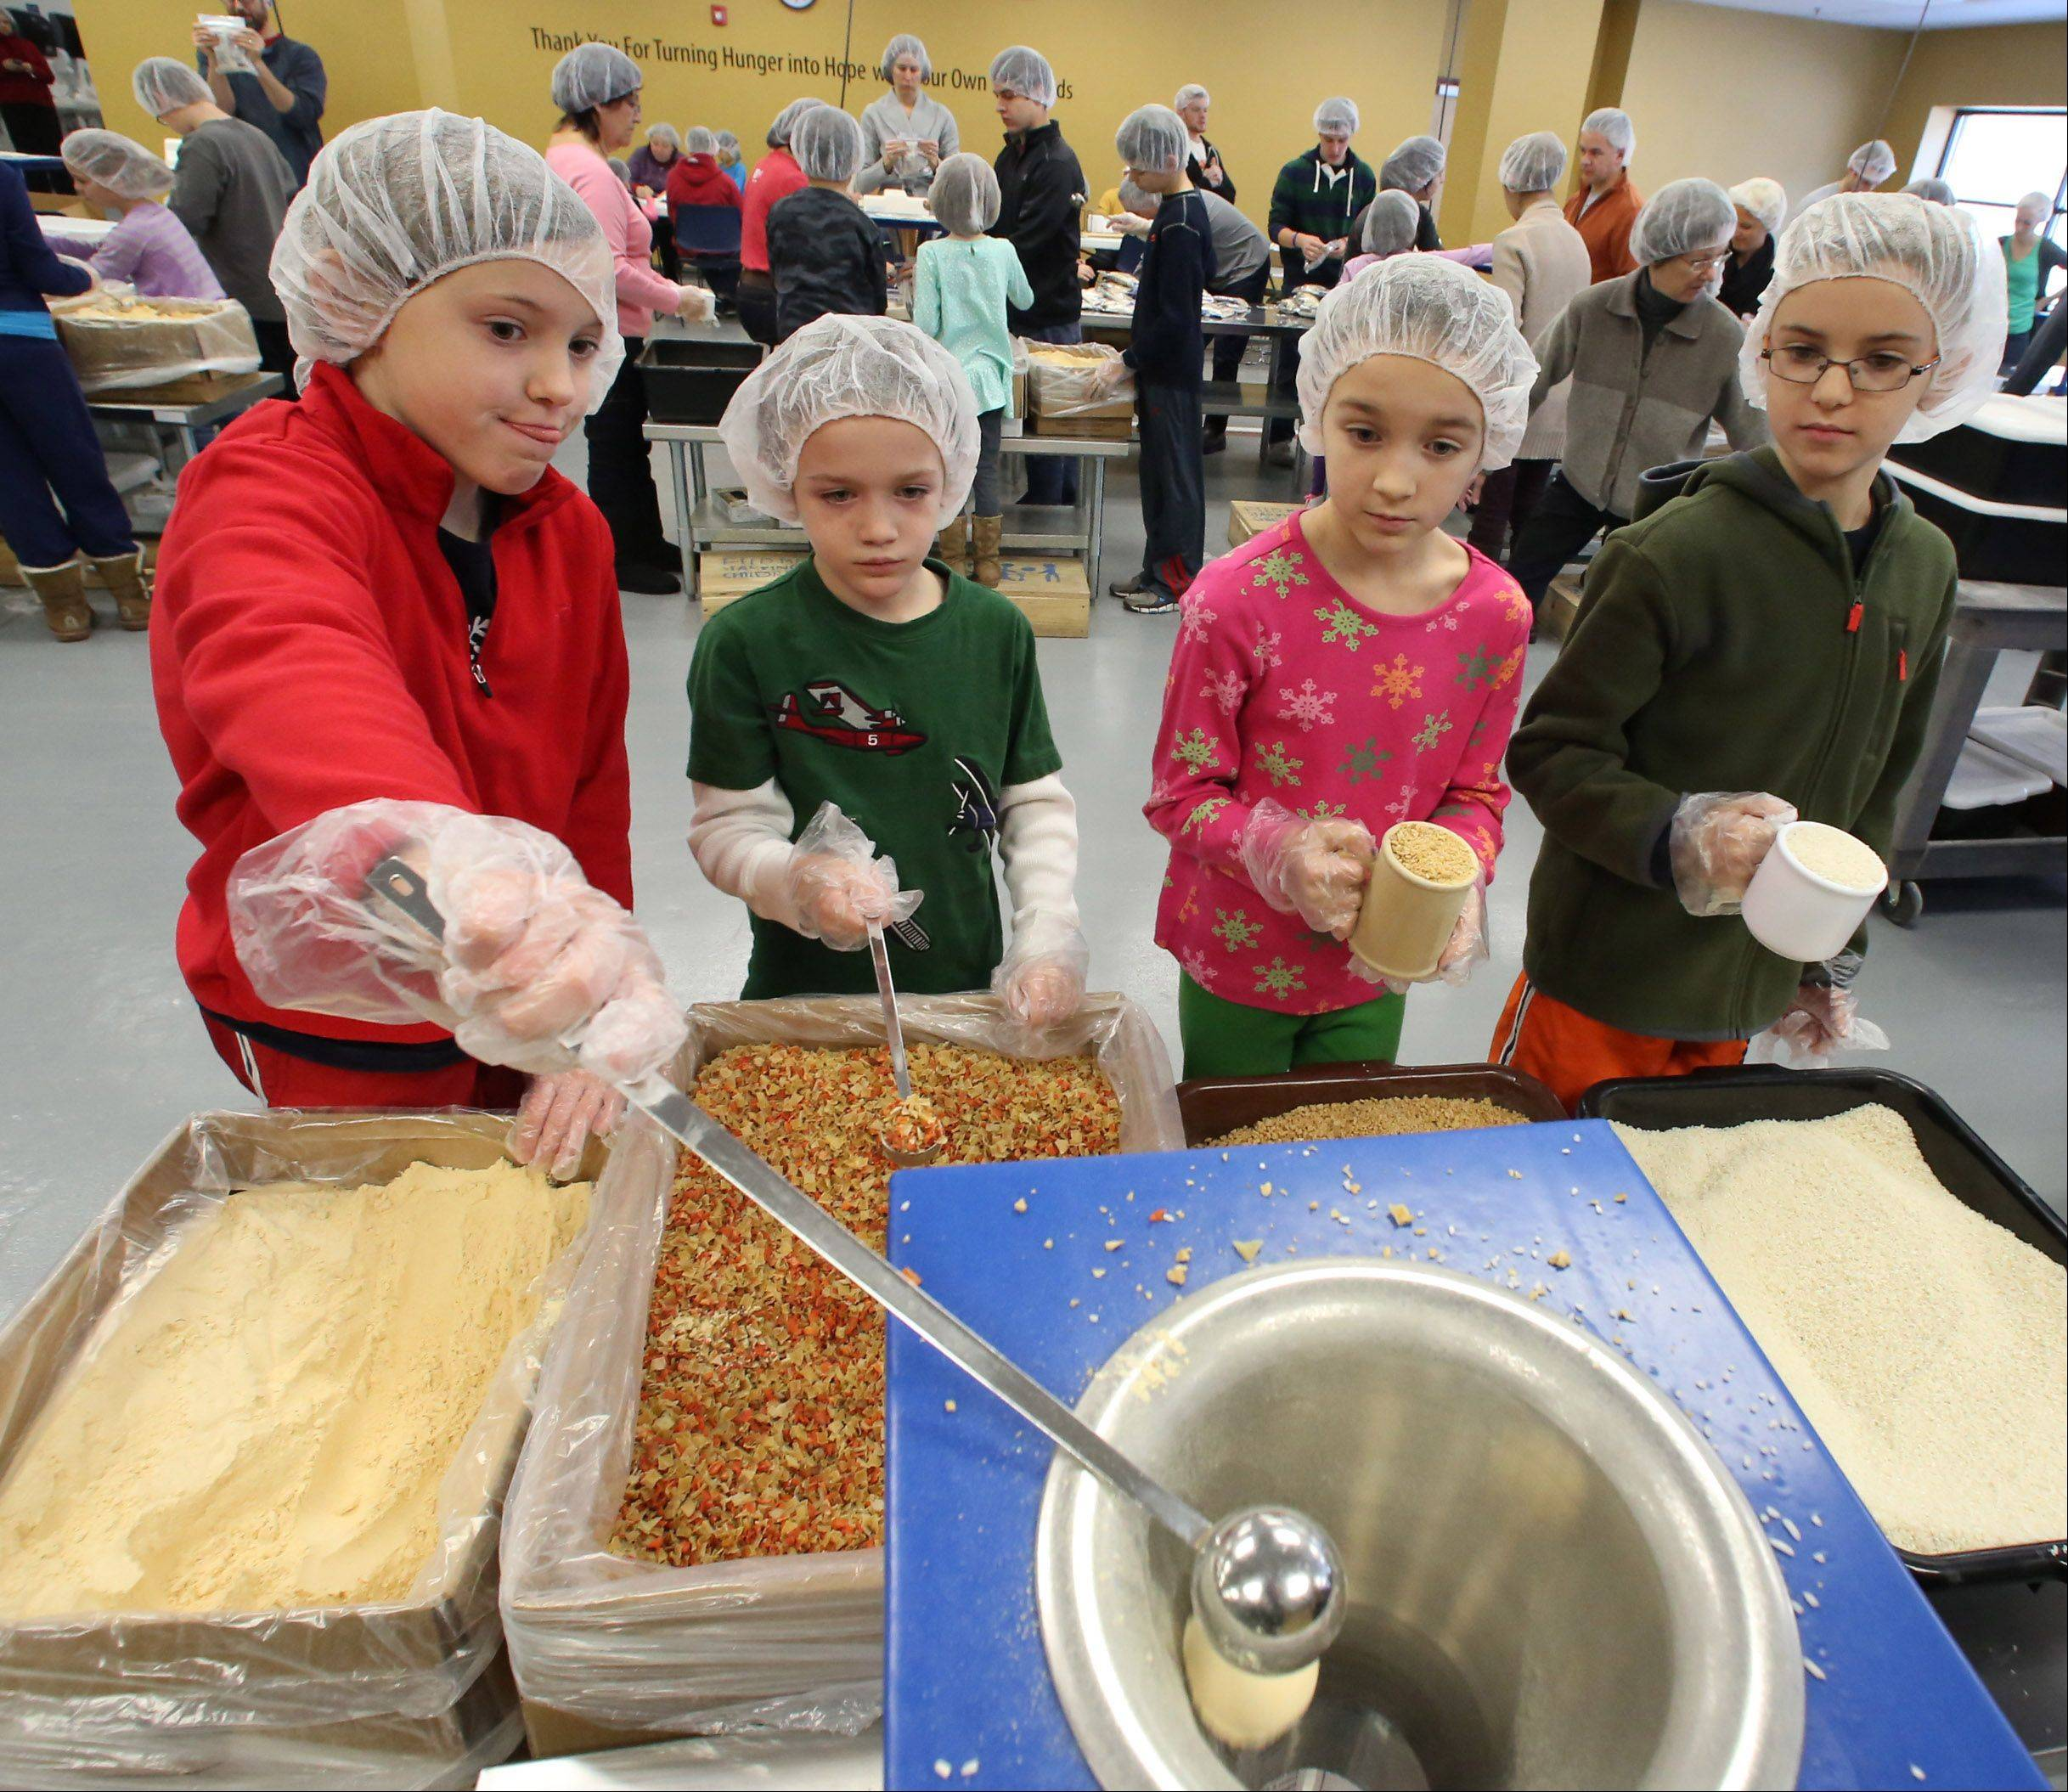 Megan Roberts, 8, left to right, pours an ingredient into a meal-packet, as Davis Hillback, 6, Abbie Hillback, 8, and Jonah Roberts, 8, all of Libertyville, wait their turn during a meal-packing event at Feed My Starving Children on Christmas Eve morning in Libertyville.